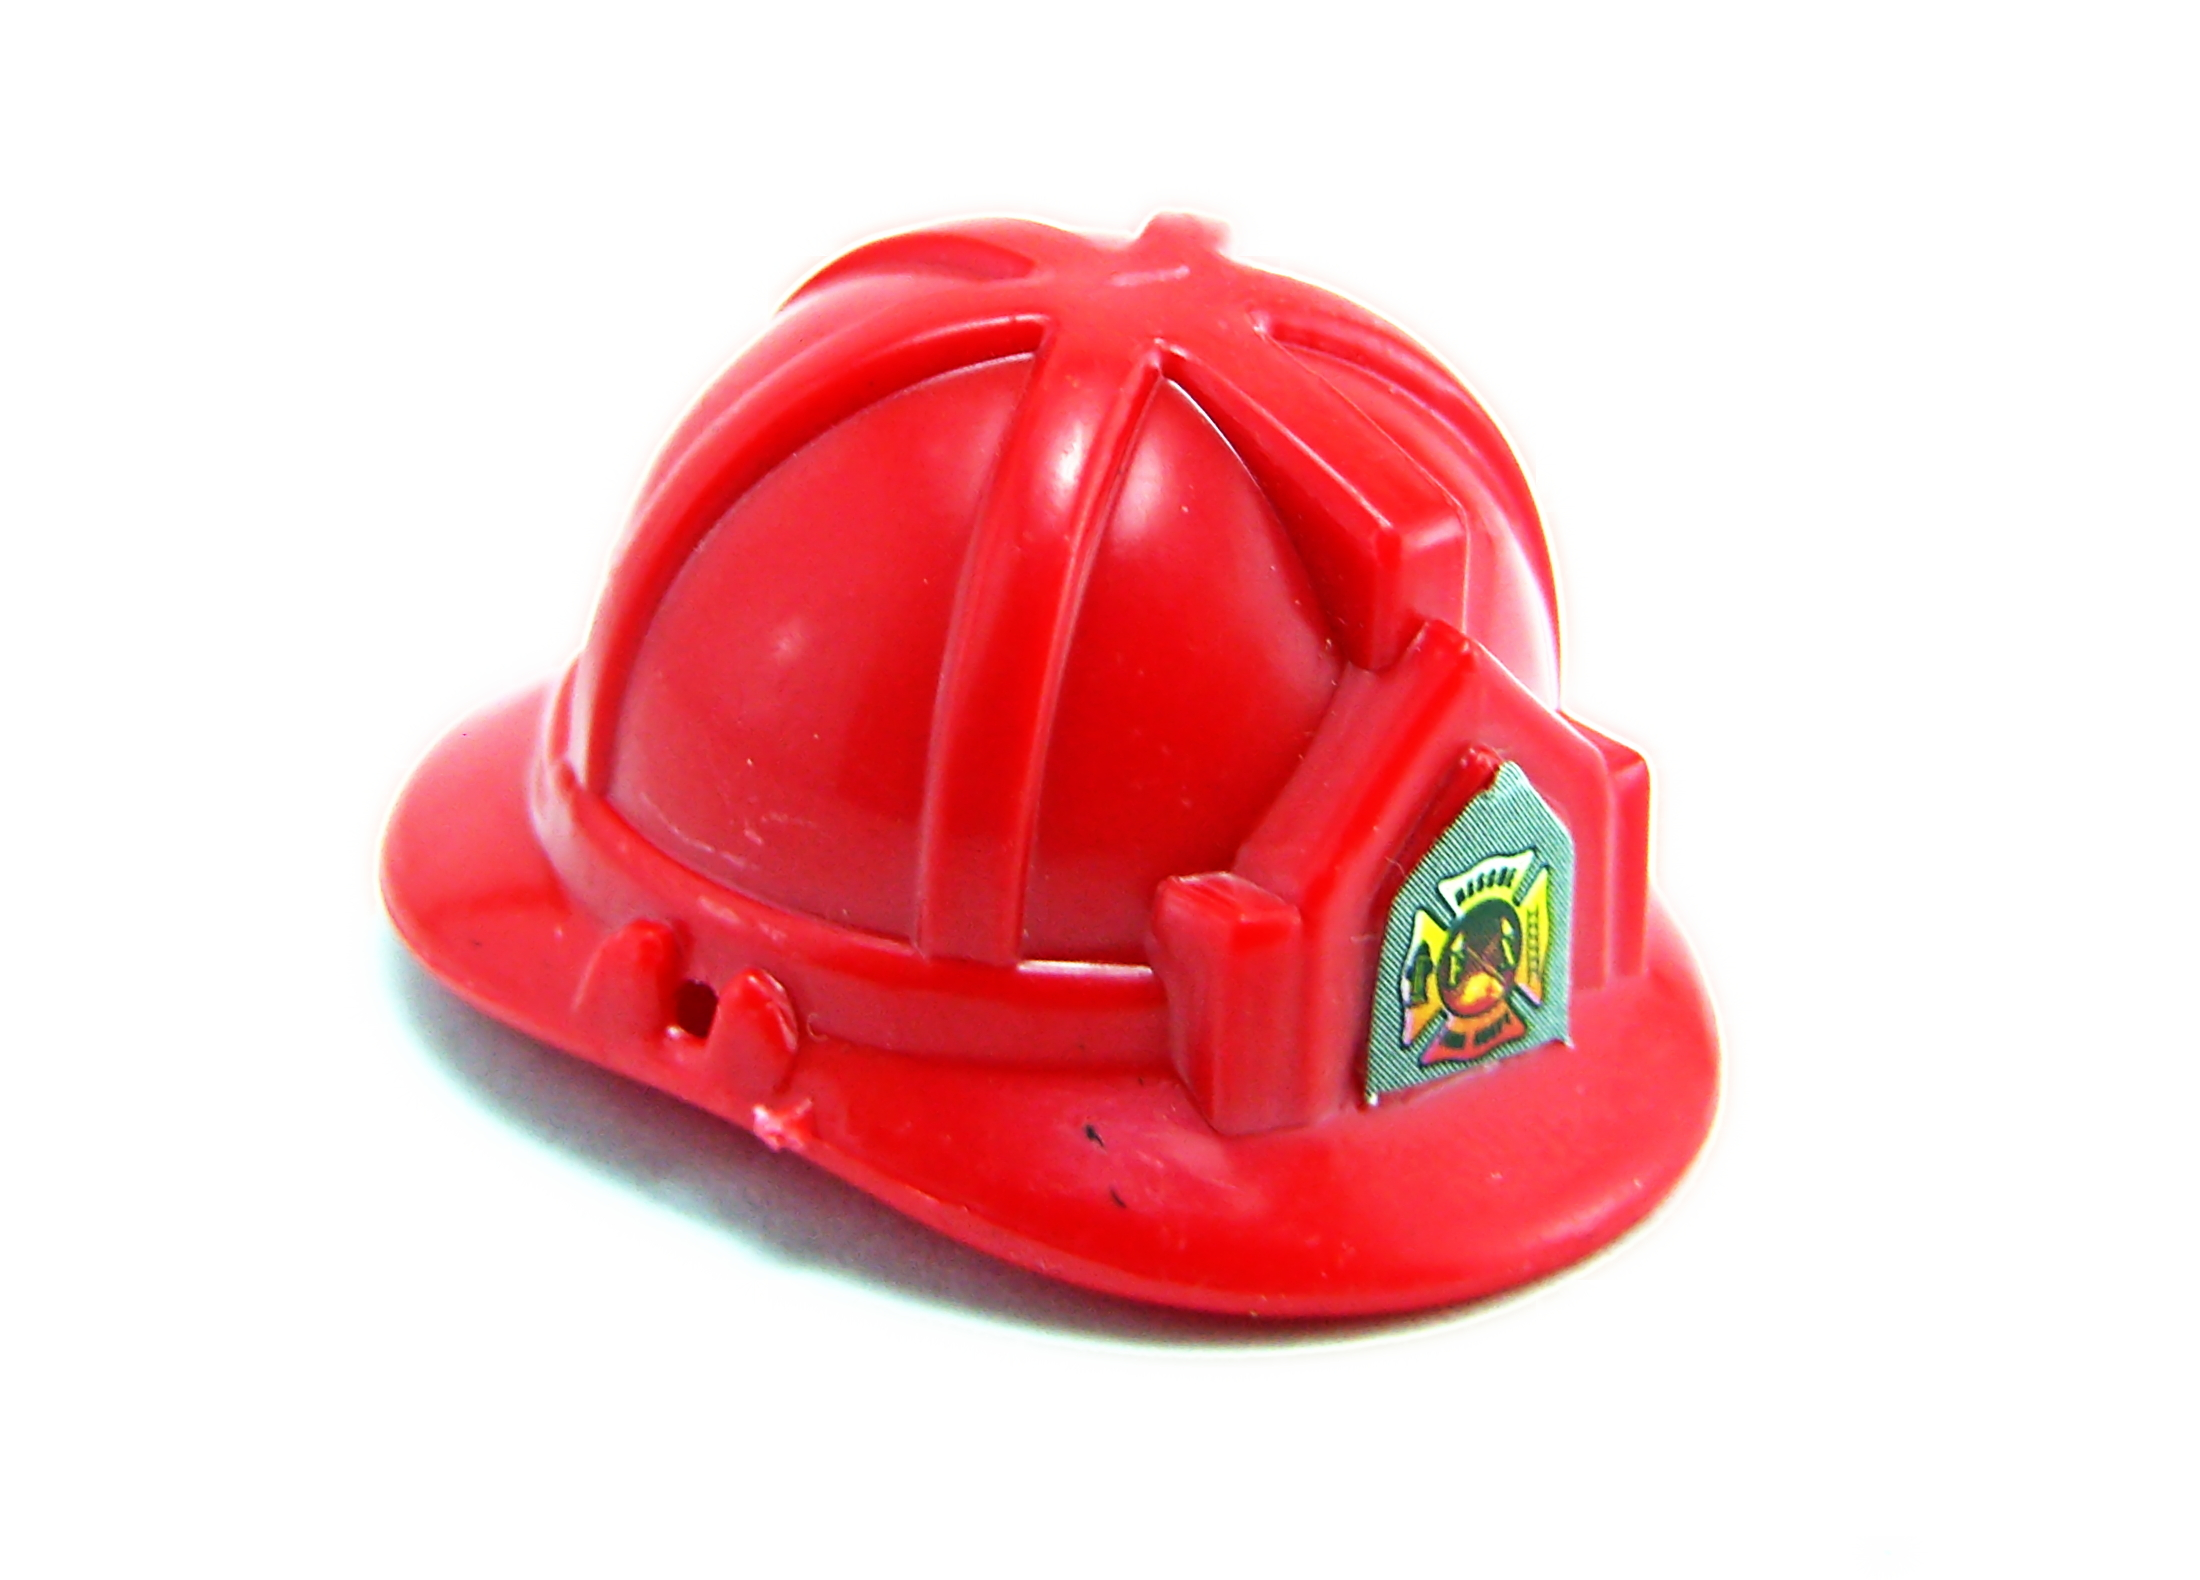 free photo fireman hat toy plastic toy red free download jooinn